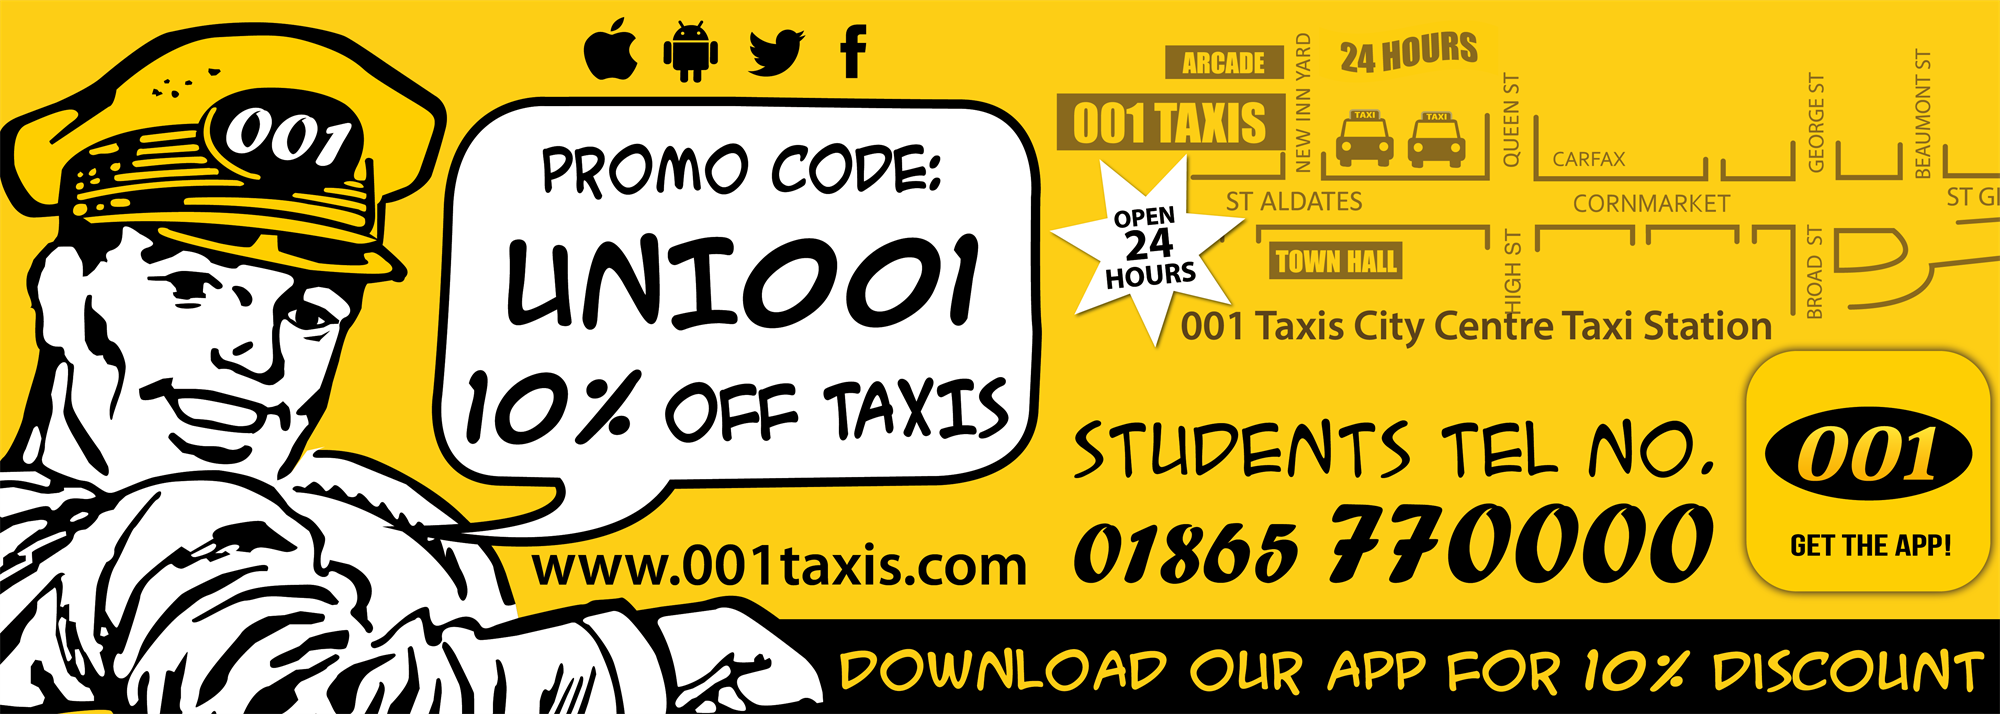 001 Taxis advertising 10% discount when using their app. Black on yellow, taxi driver and city skyli